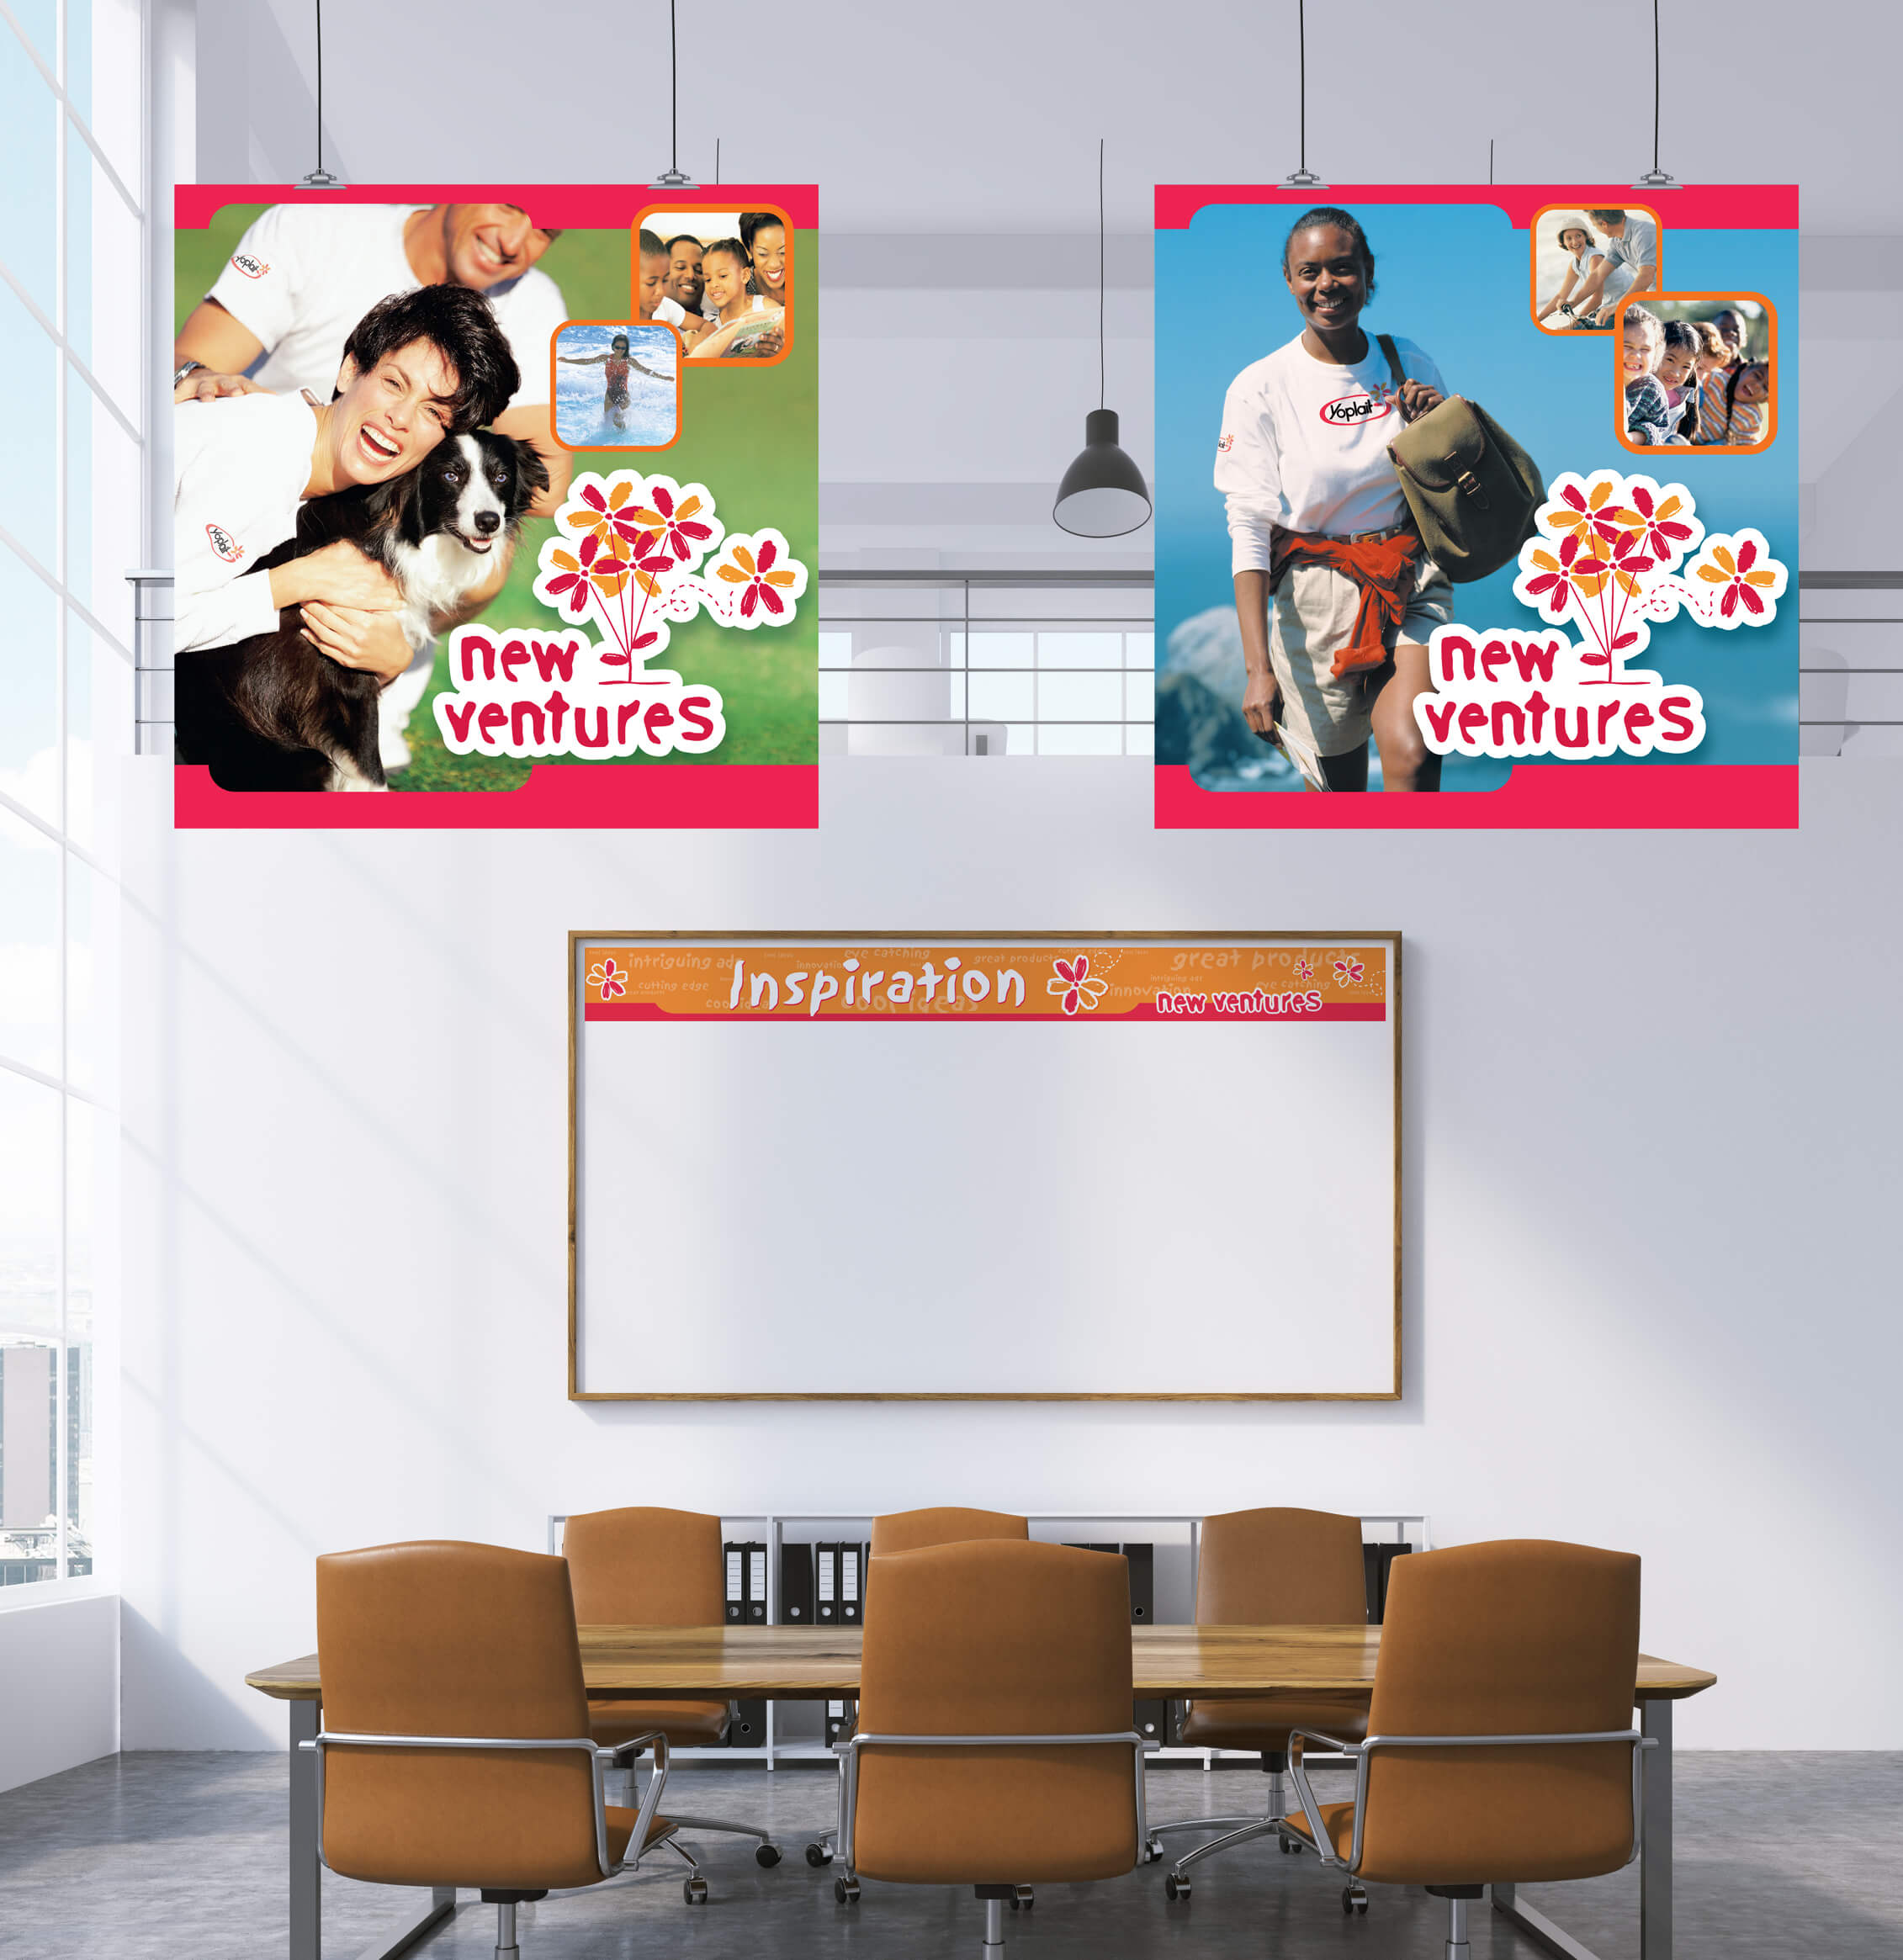 yoplait new ventures signage image